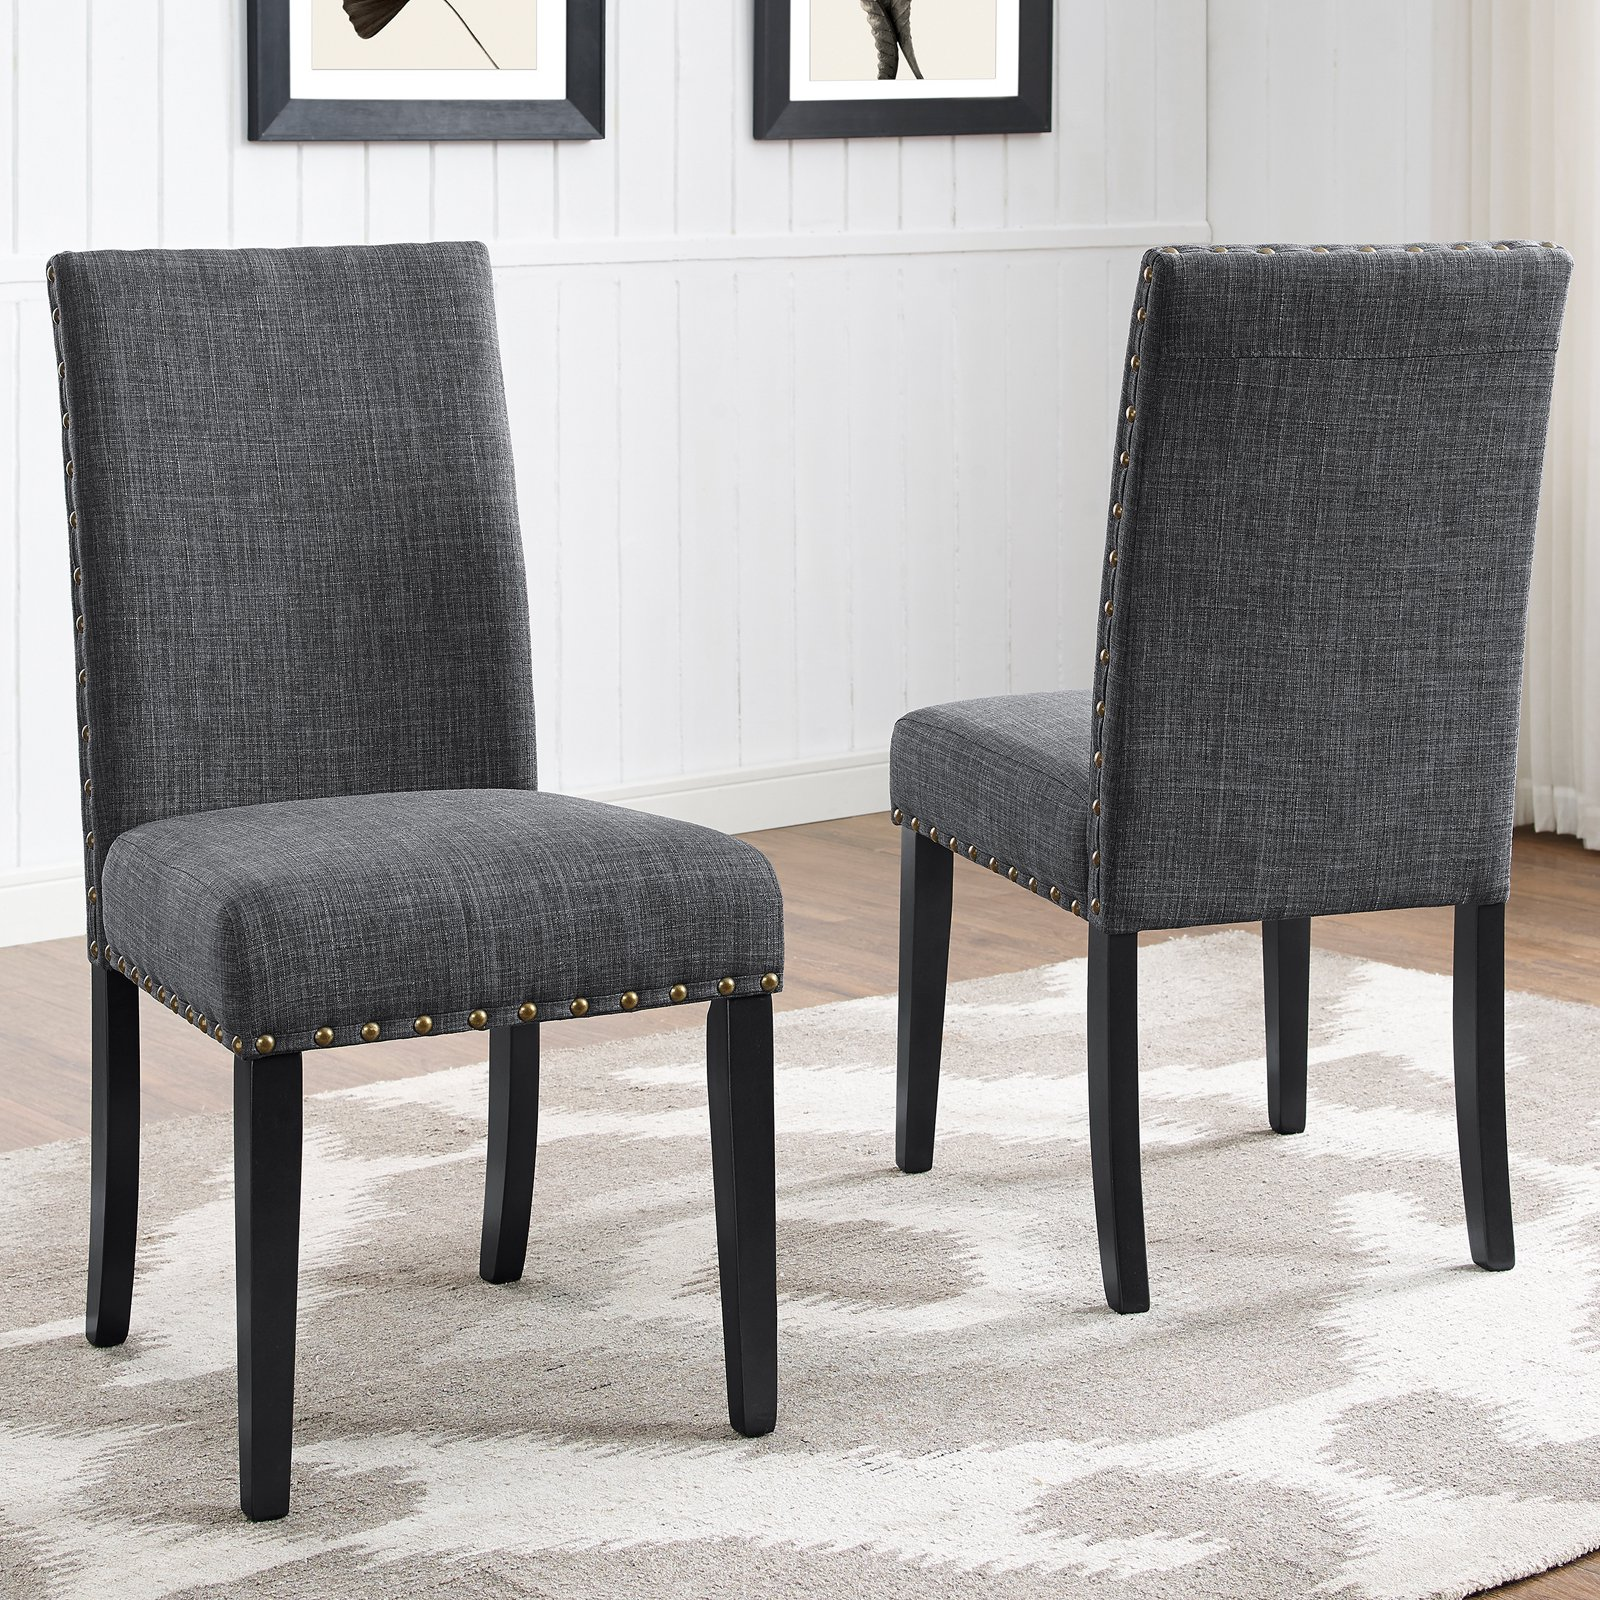 Incroyable Roundhill Furniture Biony Fabric Nail Head Dining Chair Set Of 2, Gray